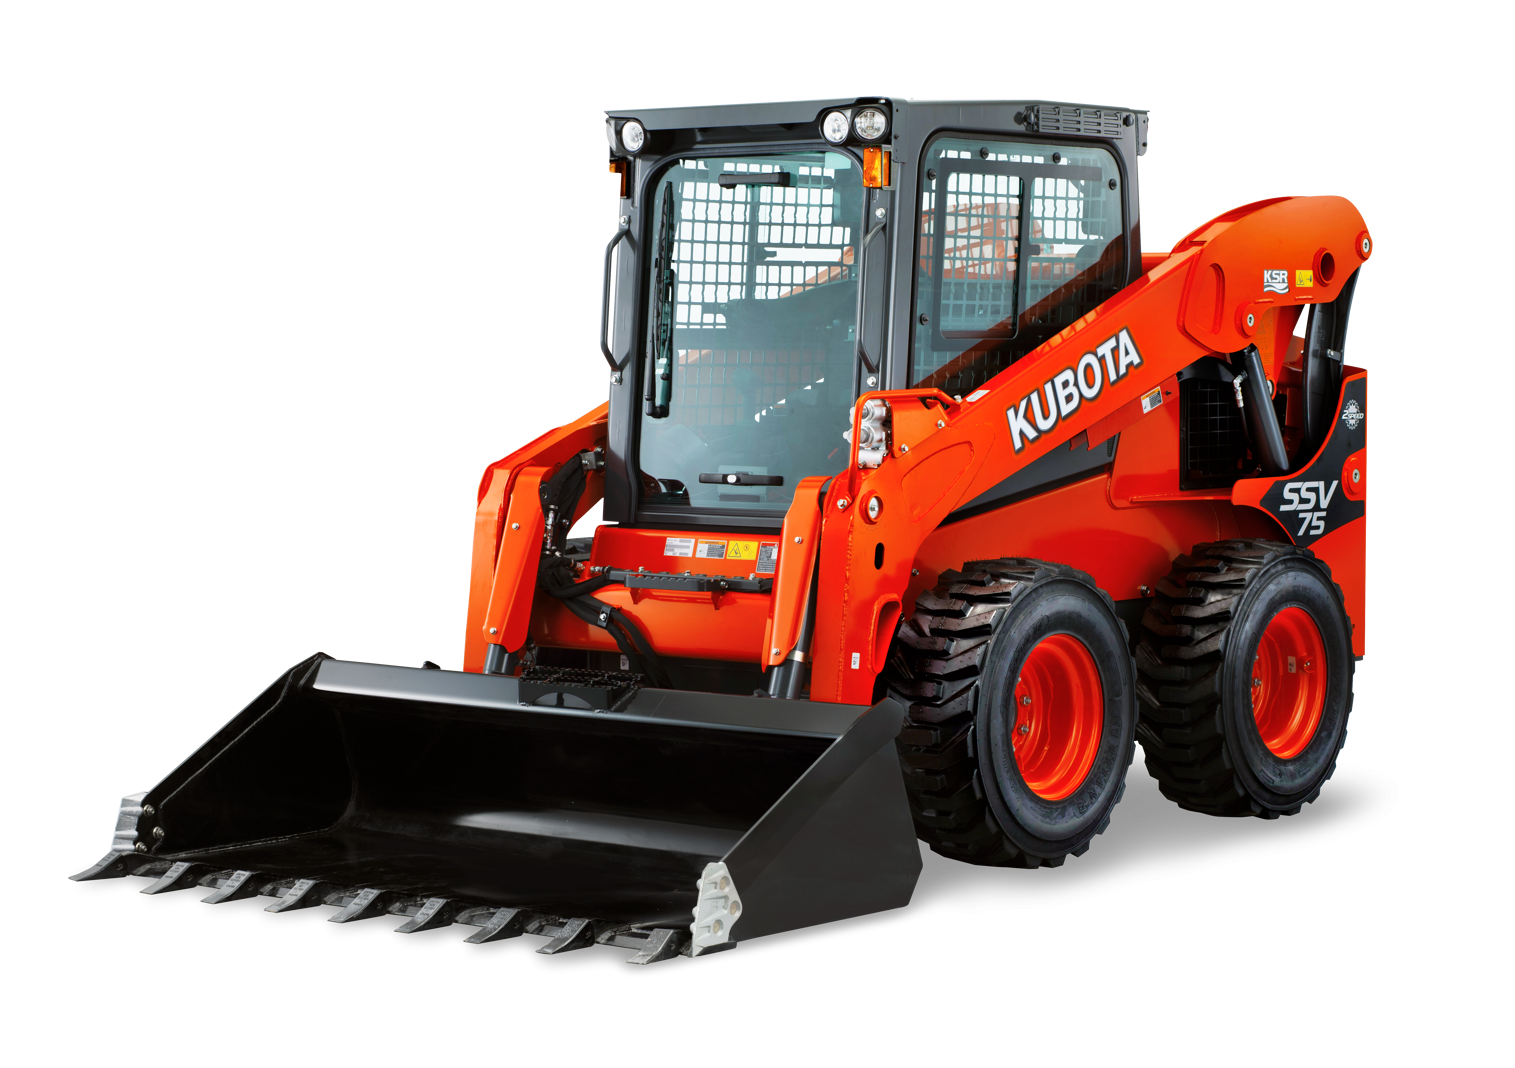 Kubota SSV 75 Skid Steer Loader